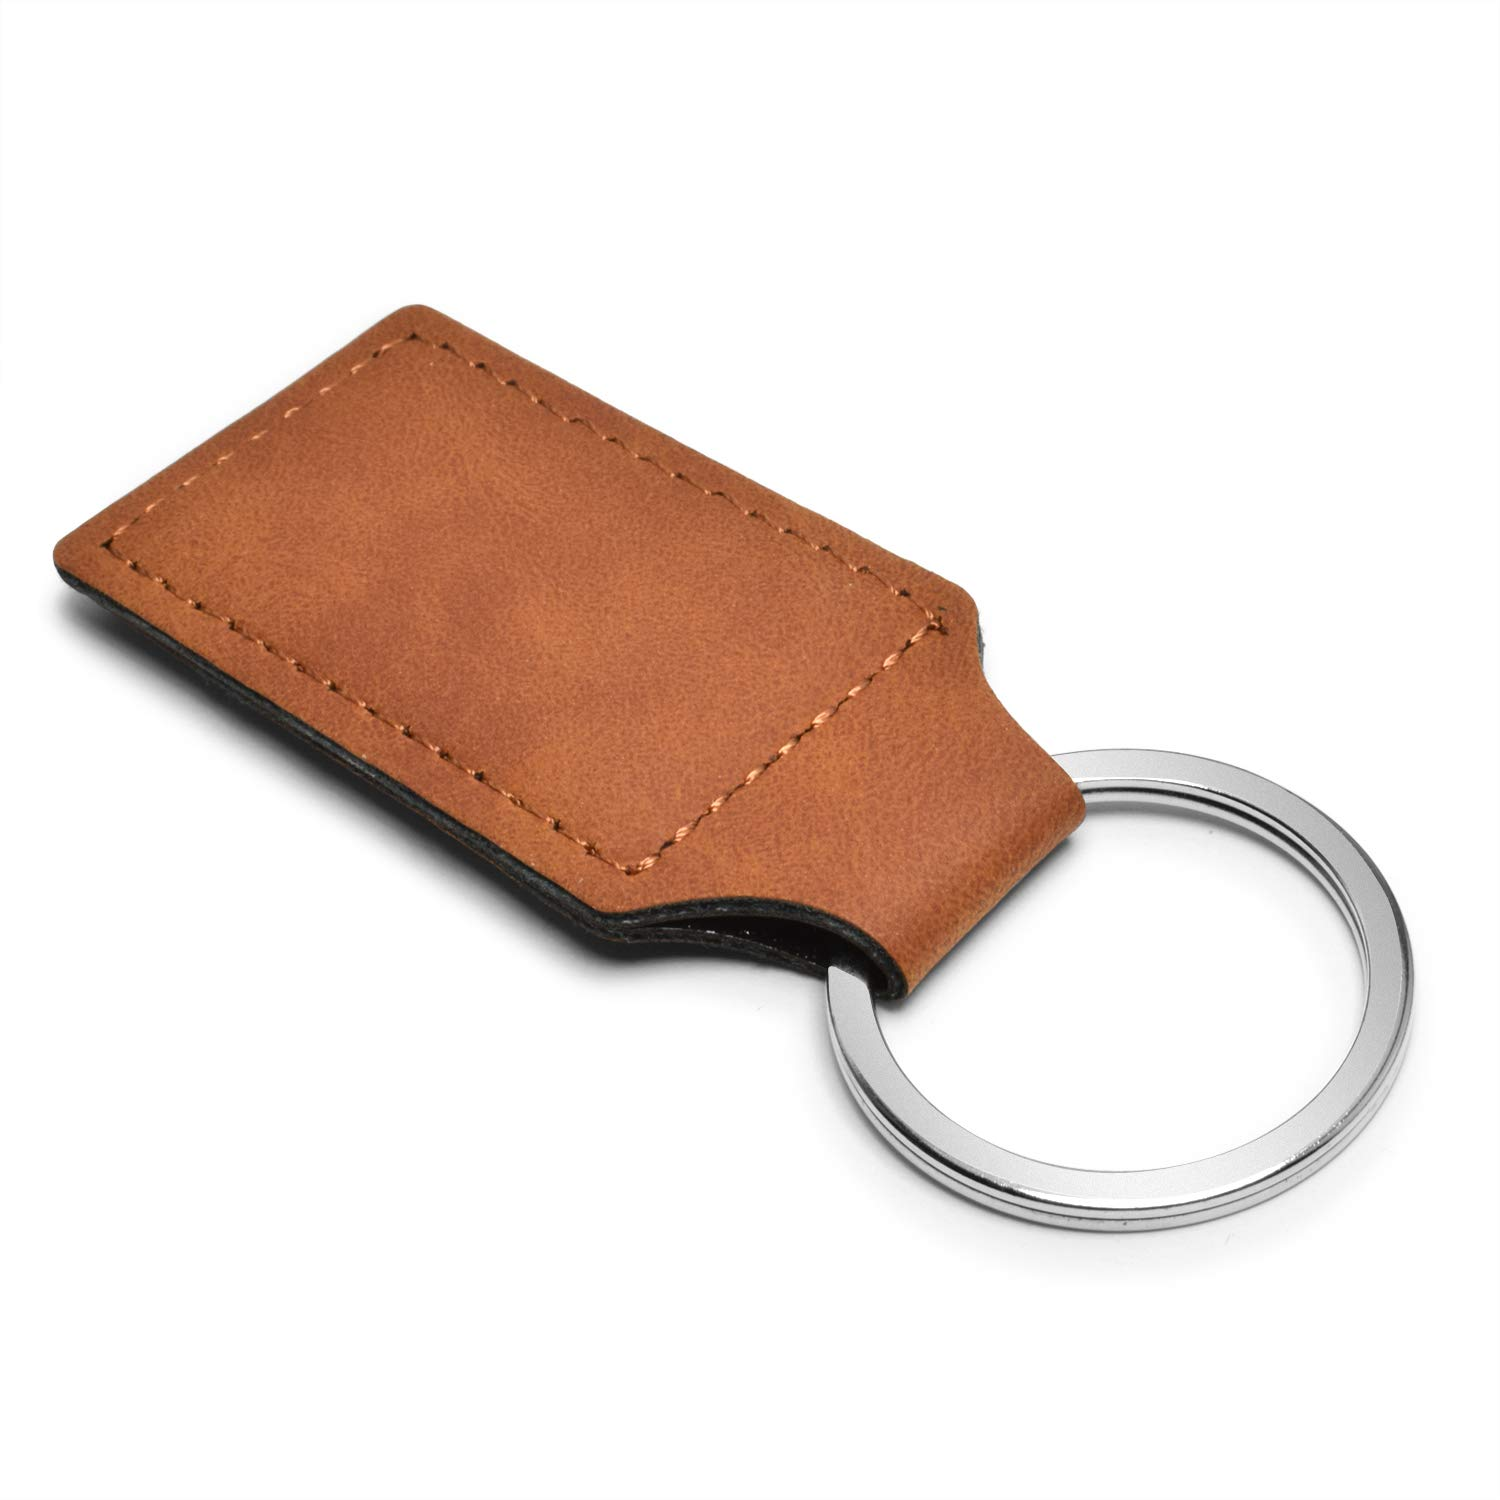 Ford Rectangular Brown Leather Key Chain Focus ST iPick Image